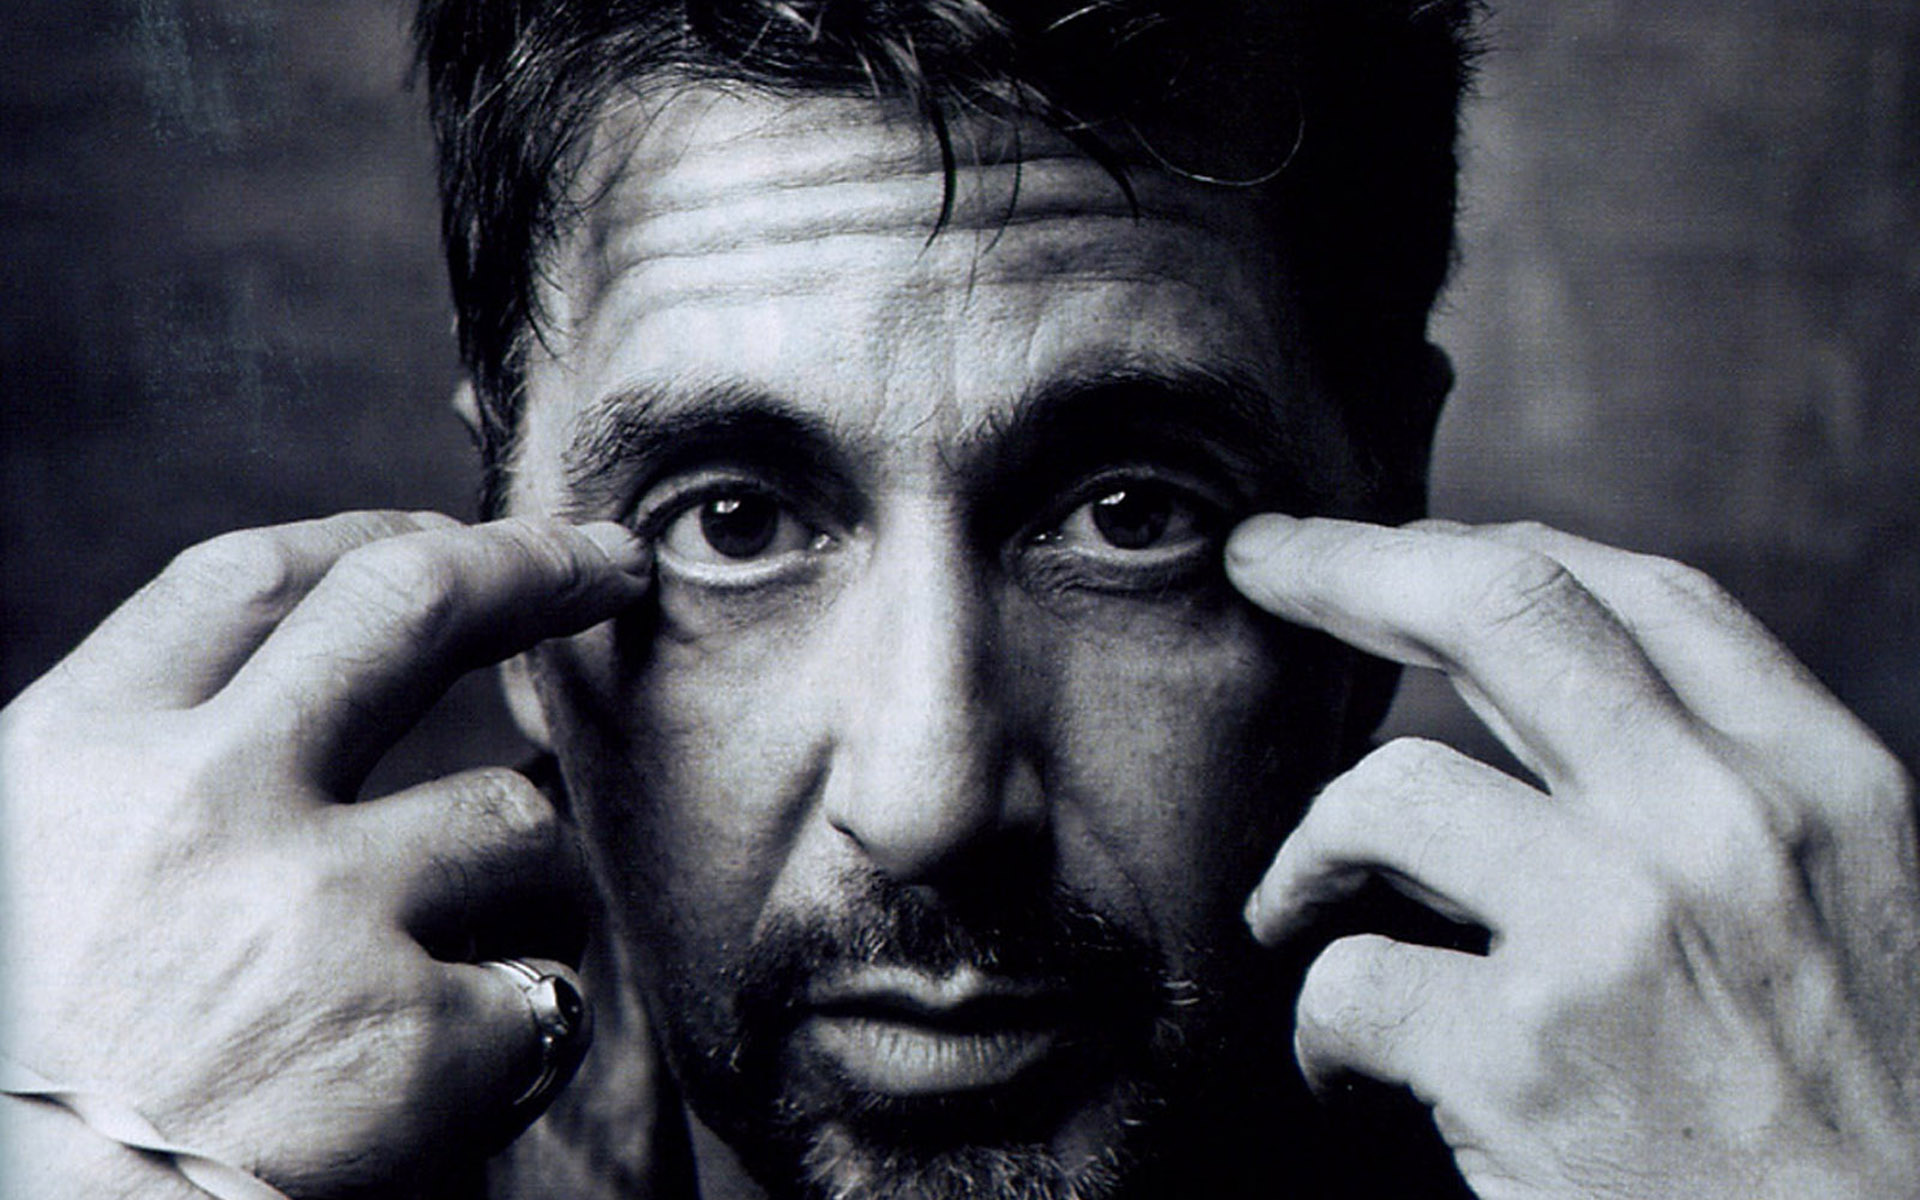 As legendary actor Al Pacino has just celebrated his 74th birthday, it marks the perfect opportunity to reflect on a truly amazing legacy and his massive ...